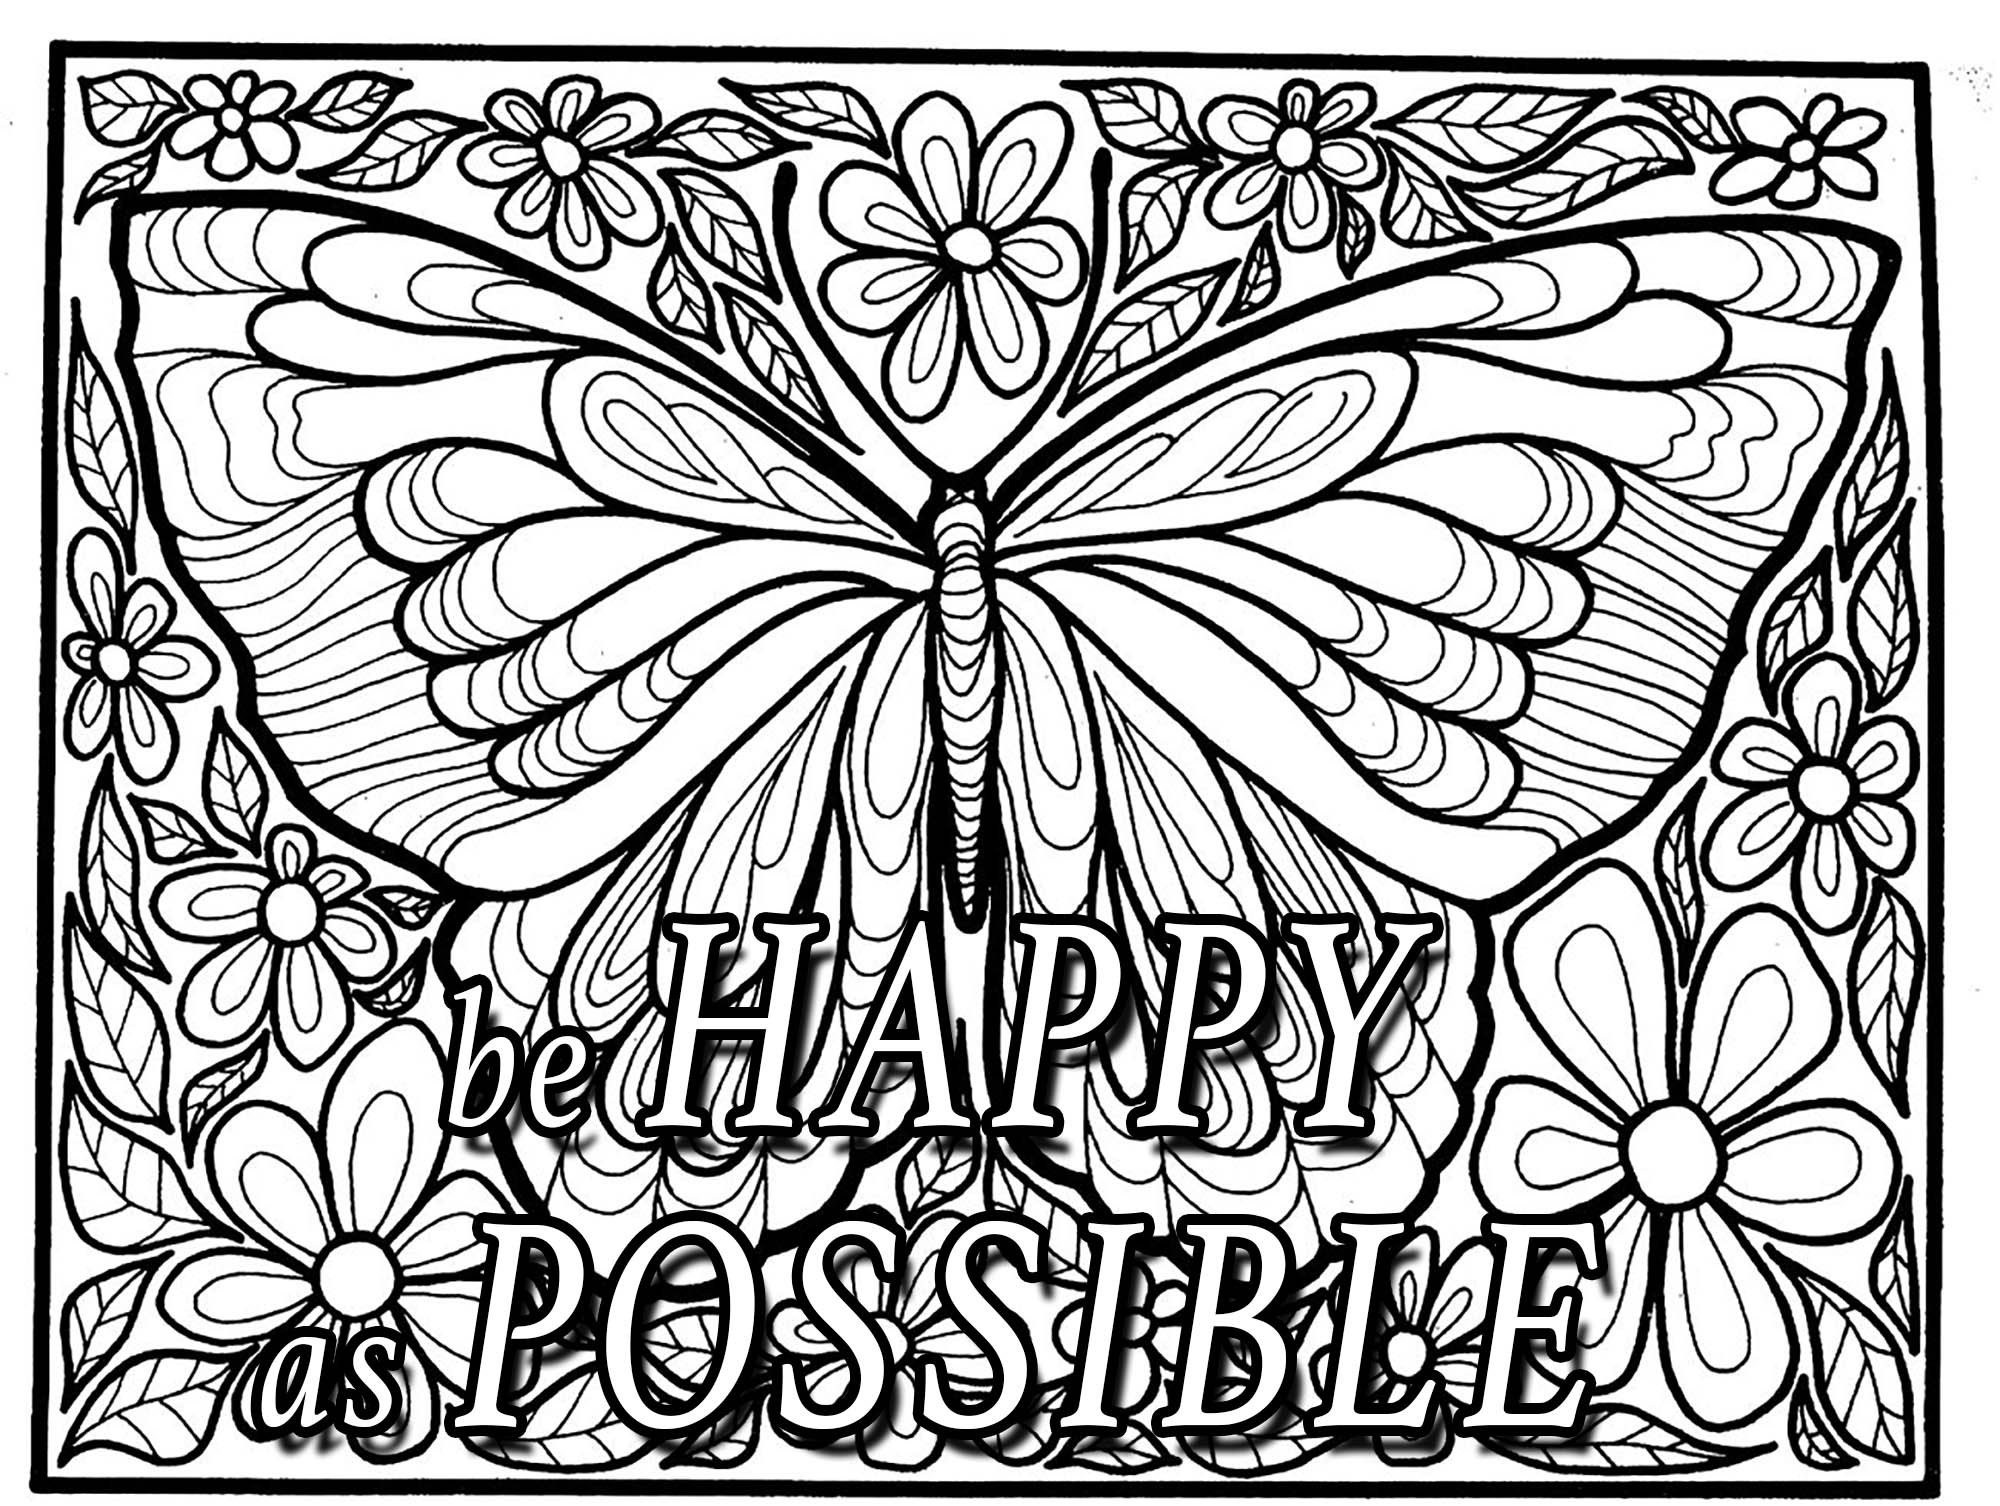 'Be Happy as Possible' : Quote to color with a butterfly, flowers and leaves